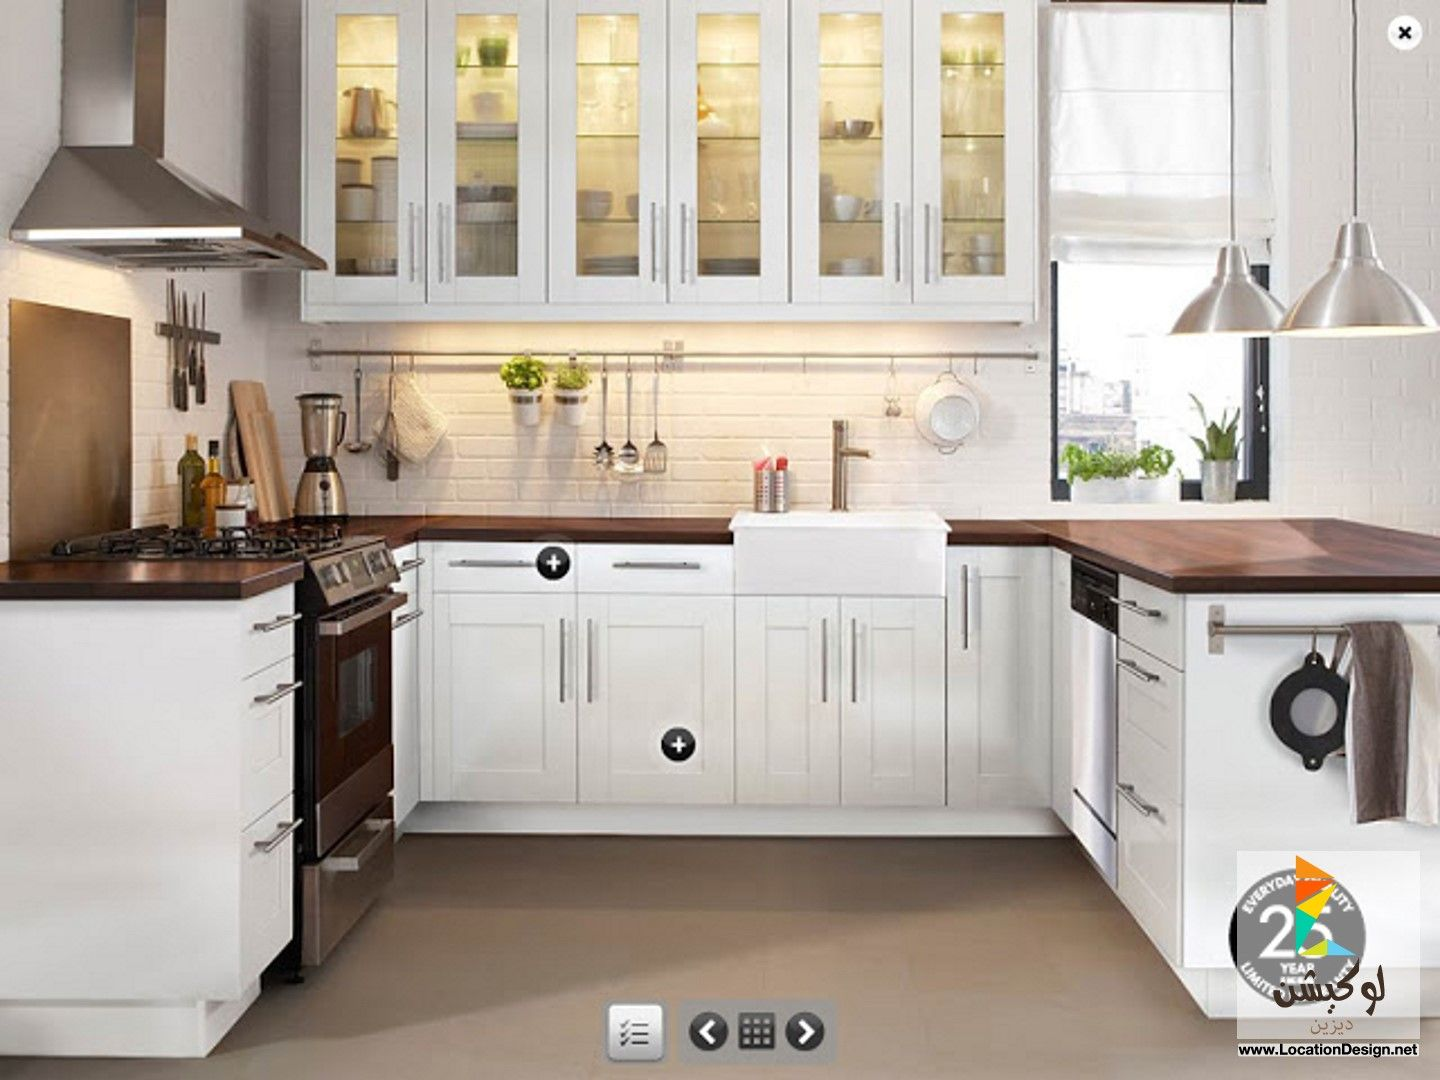 Best Images About ديكورات مطابخ On Pinterest Pine Floors - Kitchen design with small space